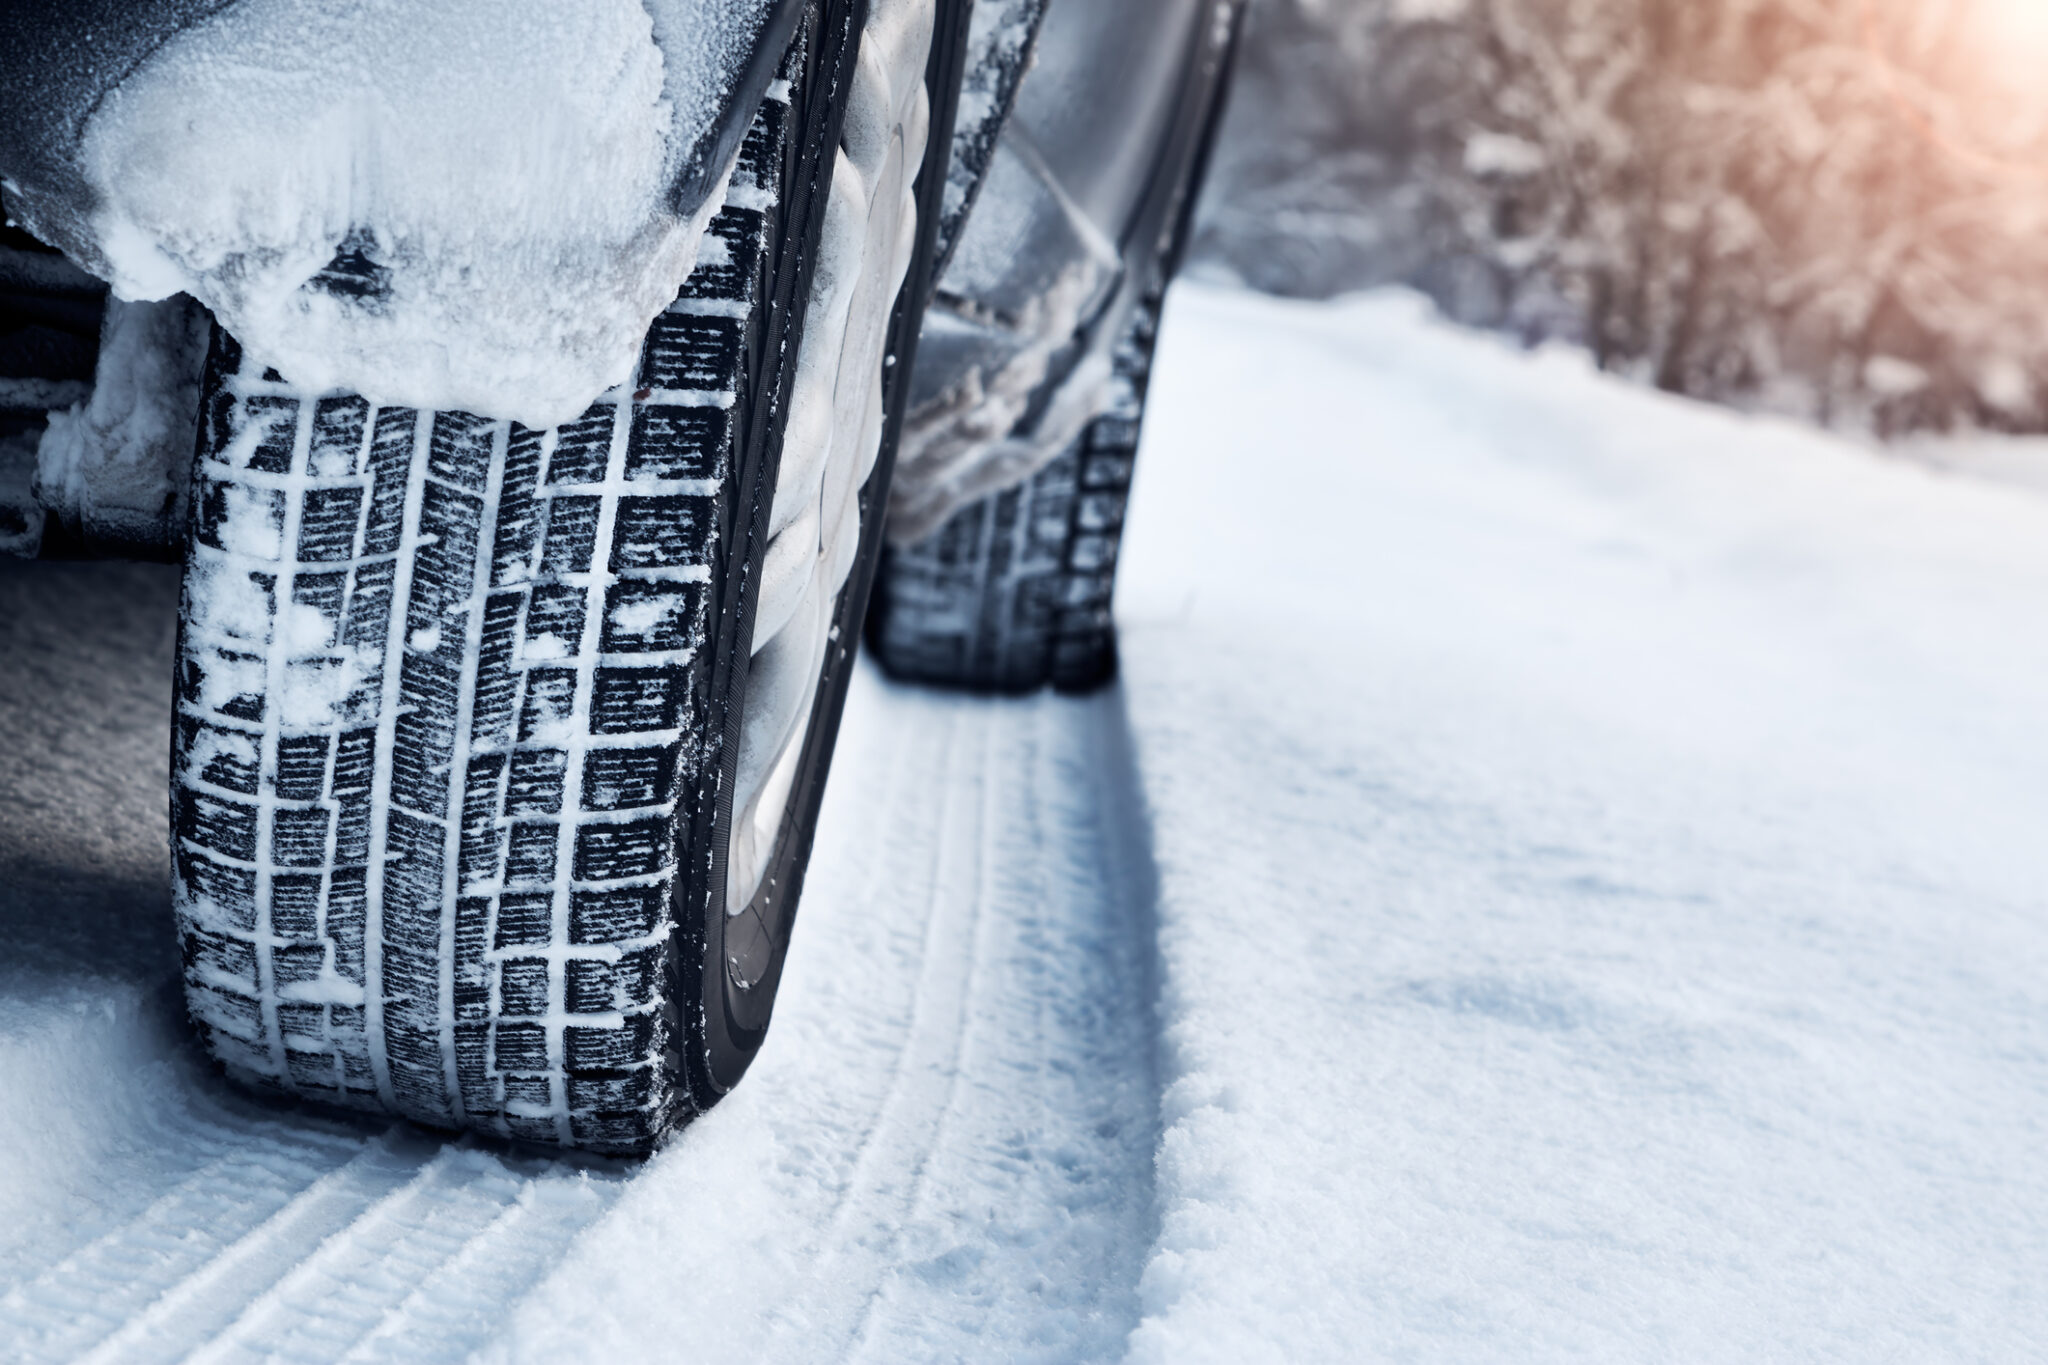 Winter tires on a road covered in snow